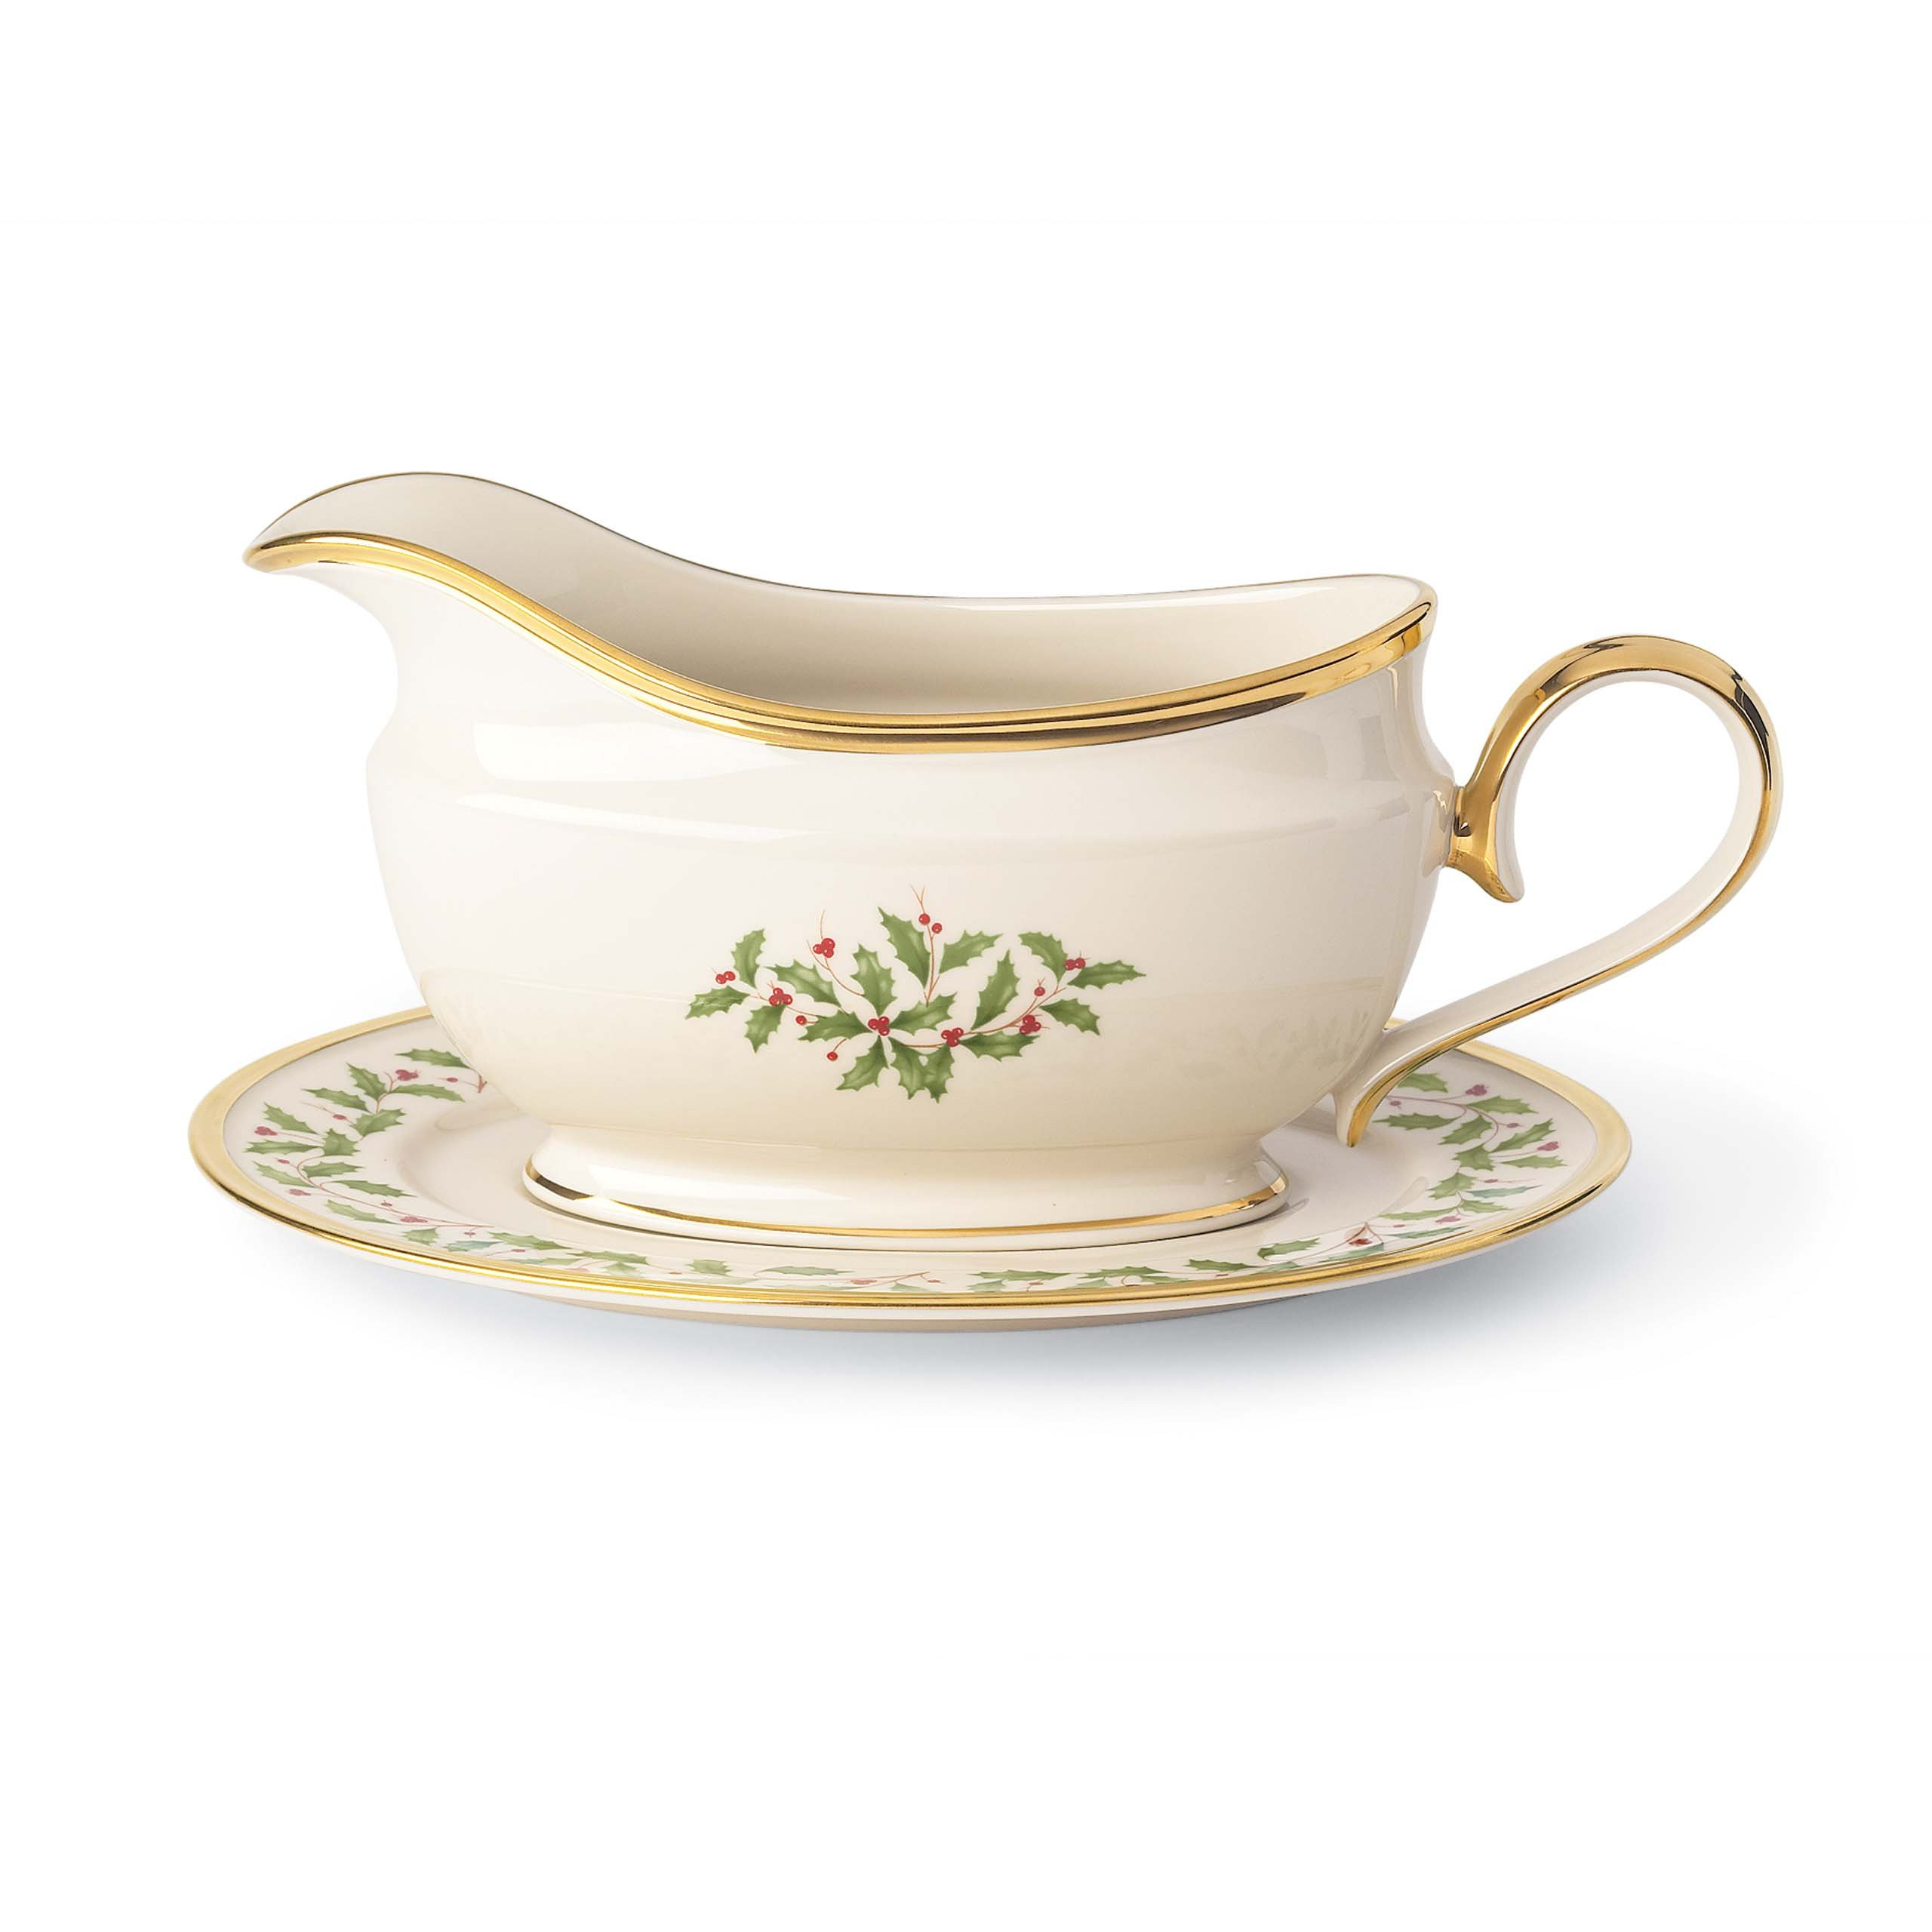 Lenox Holiday Sauce Boat & Stand,Ivory